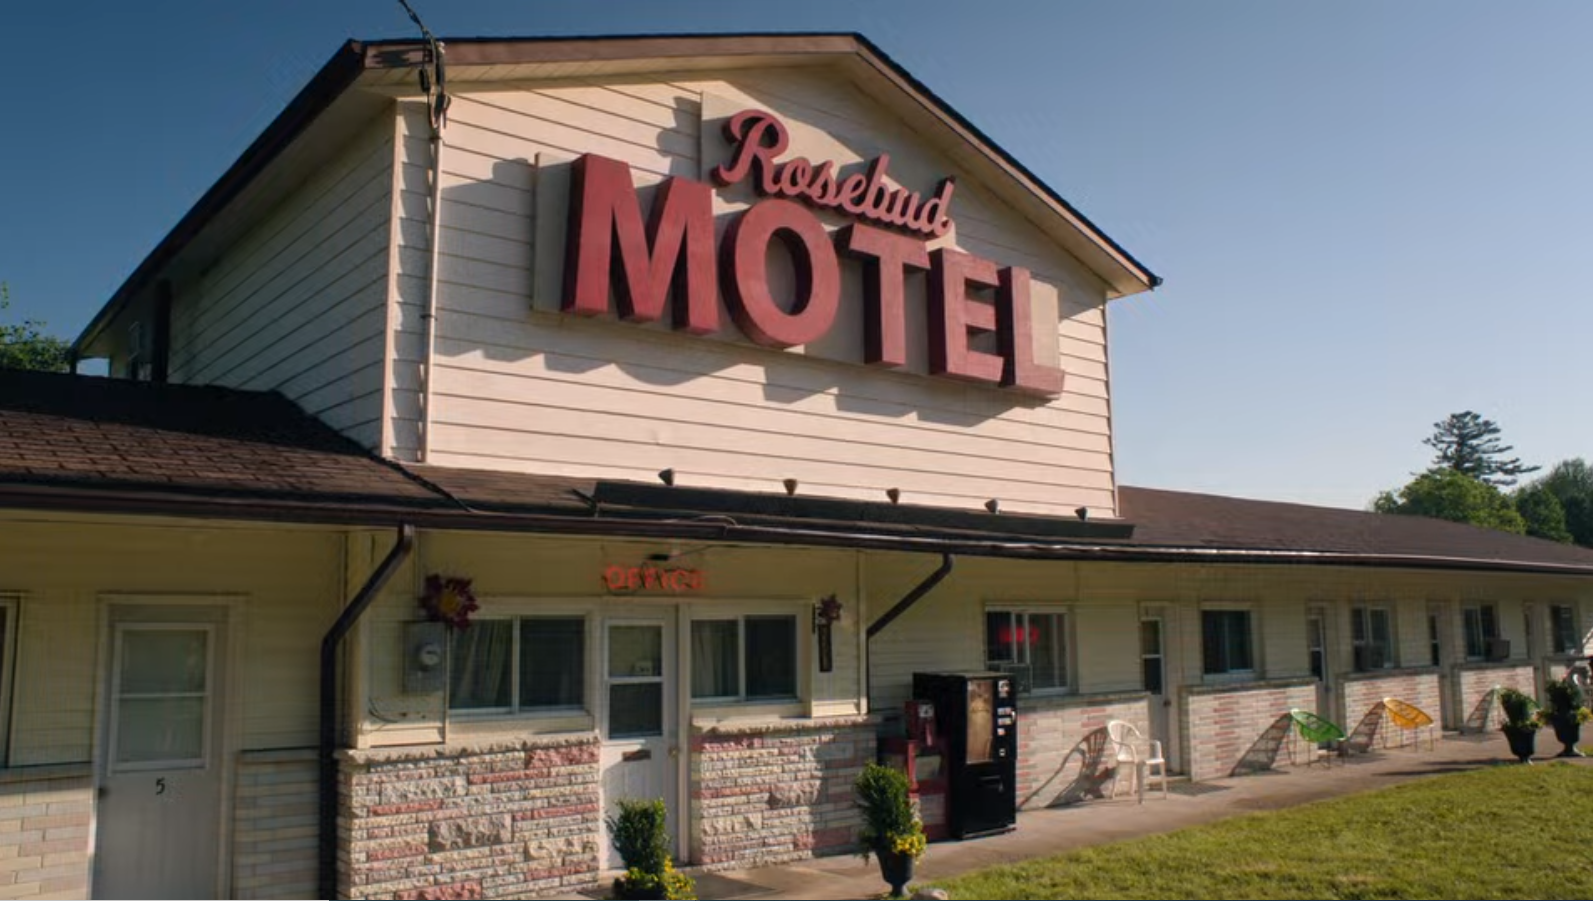 The 'Schitt's Creek' Motel Is For Sale: Photos of the Real Rosebud!